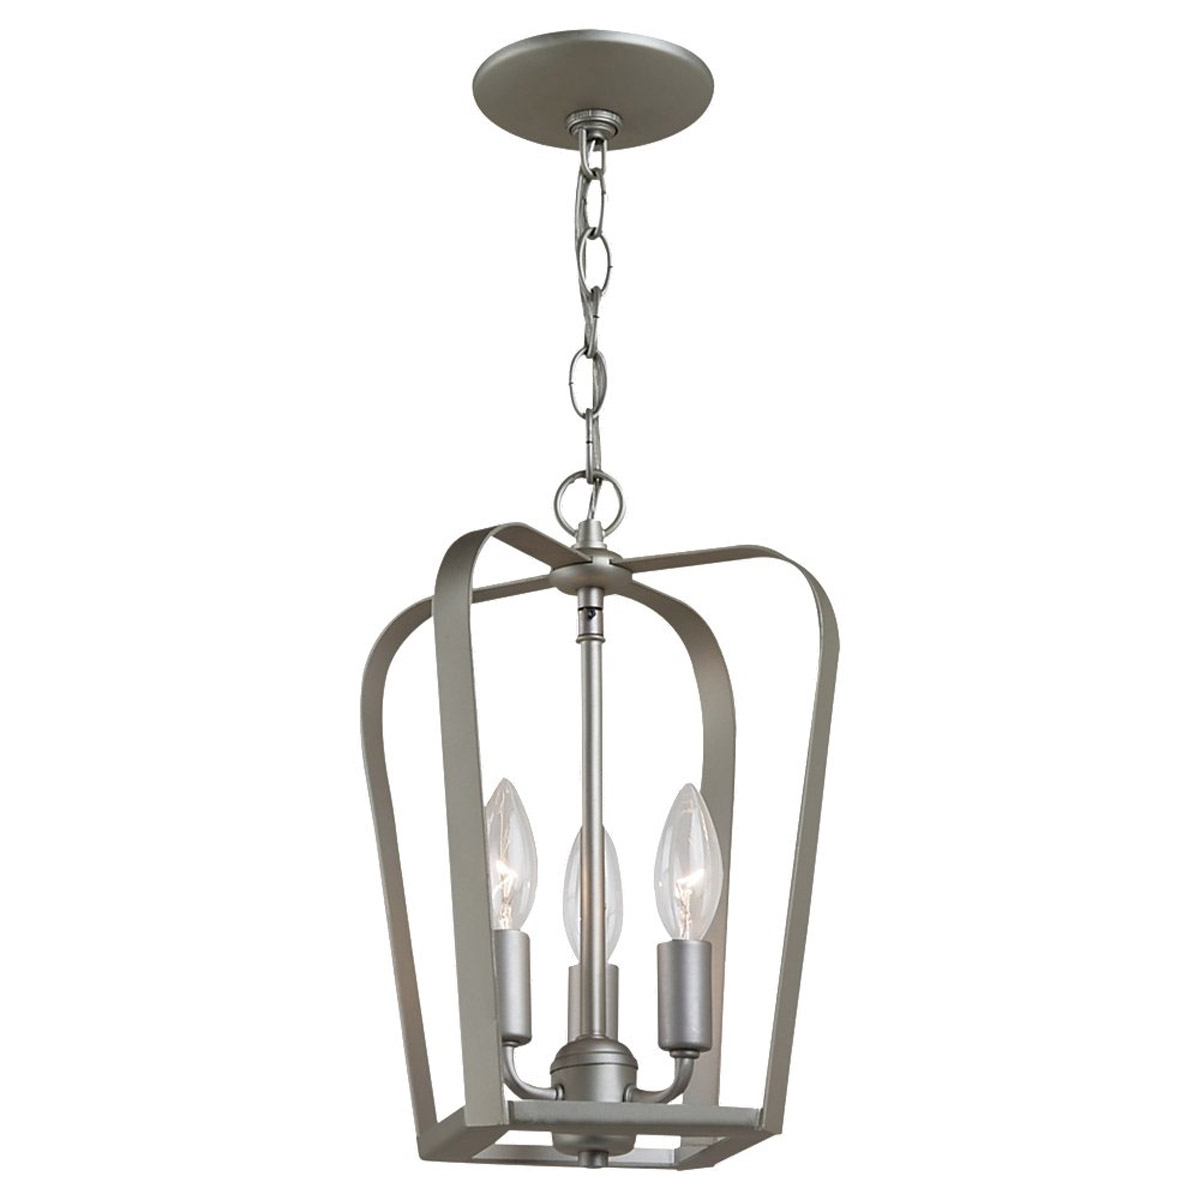 Sea Gull Lighting Windgate 3 Light Foyer Pendant in Painted Brushed Nickel 54940-753 photo